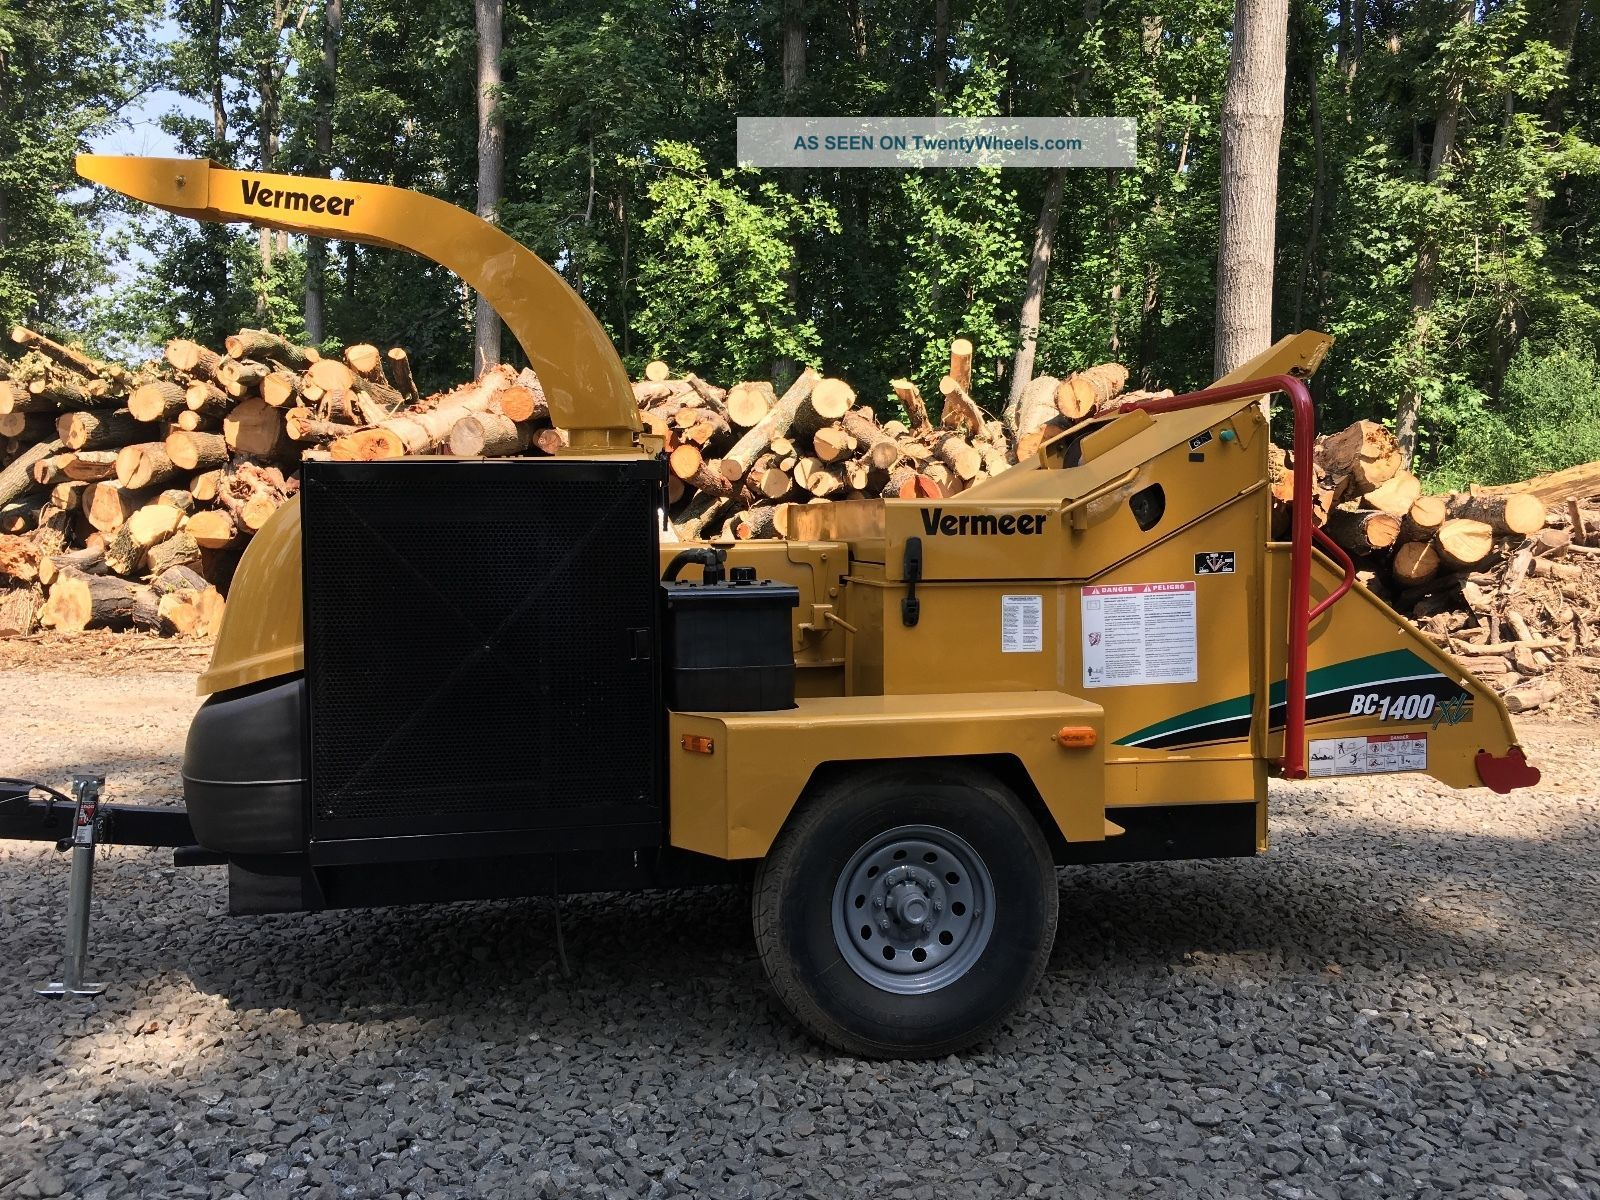 Vermeer Bc1400xl Chipper Wood Chippers & Stump Grinders photo